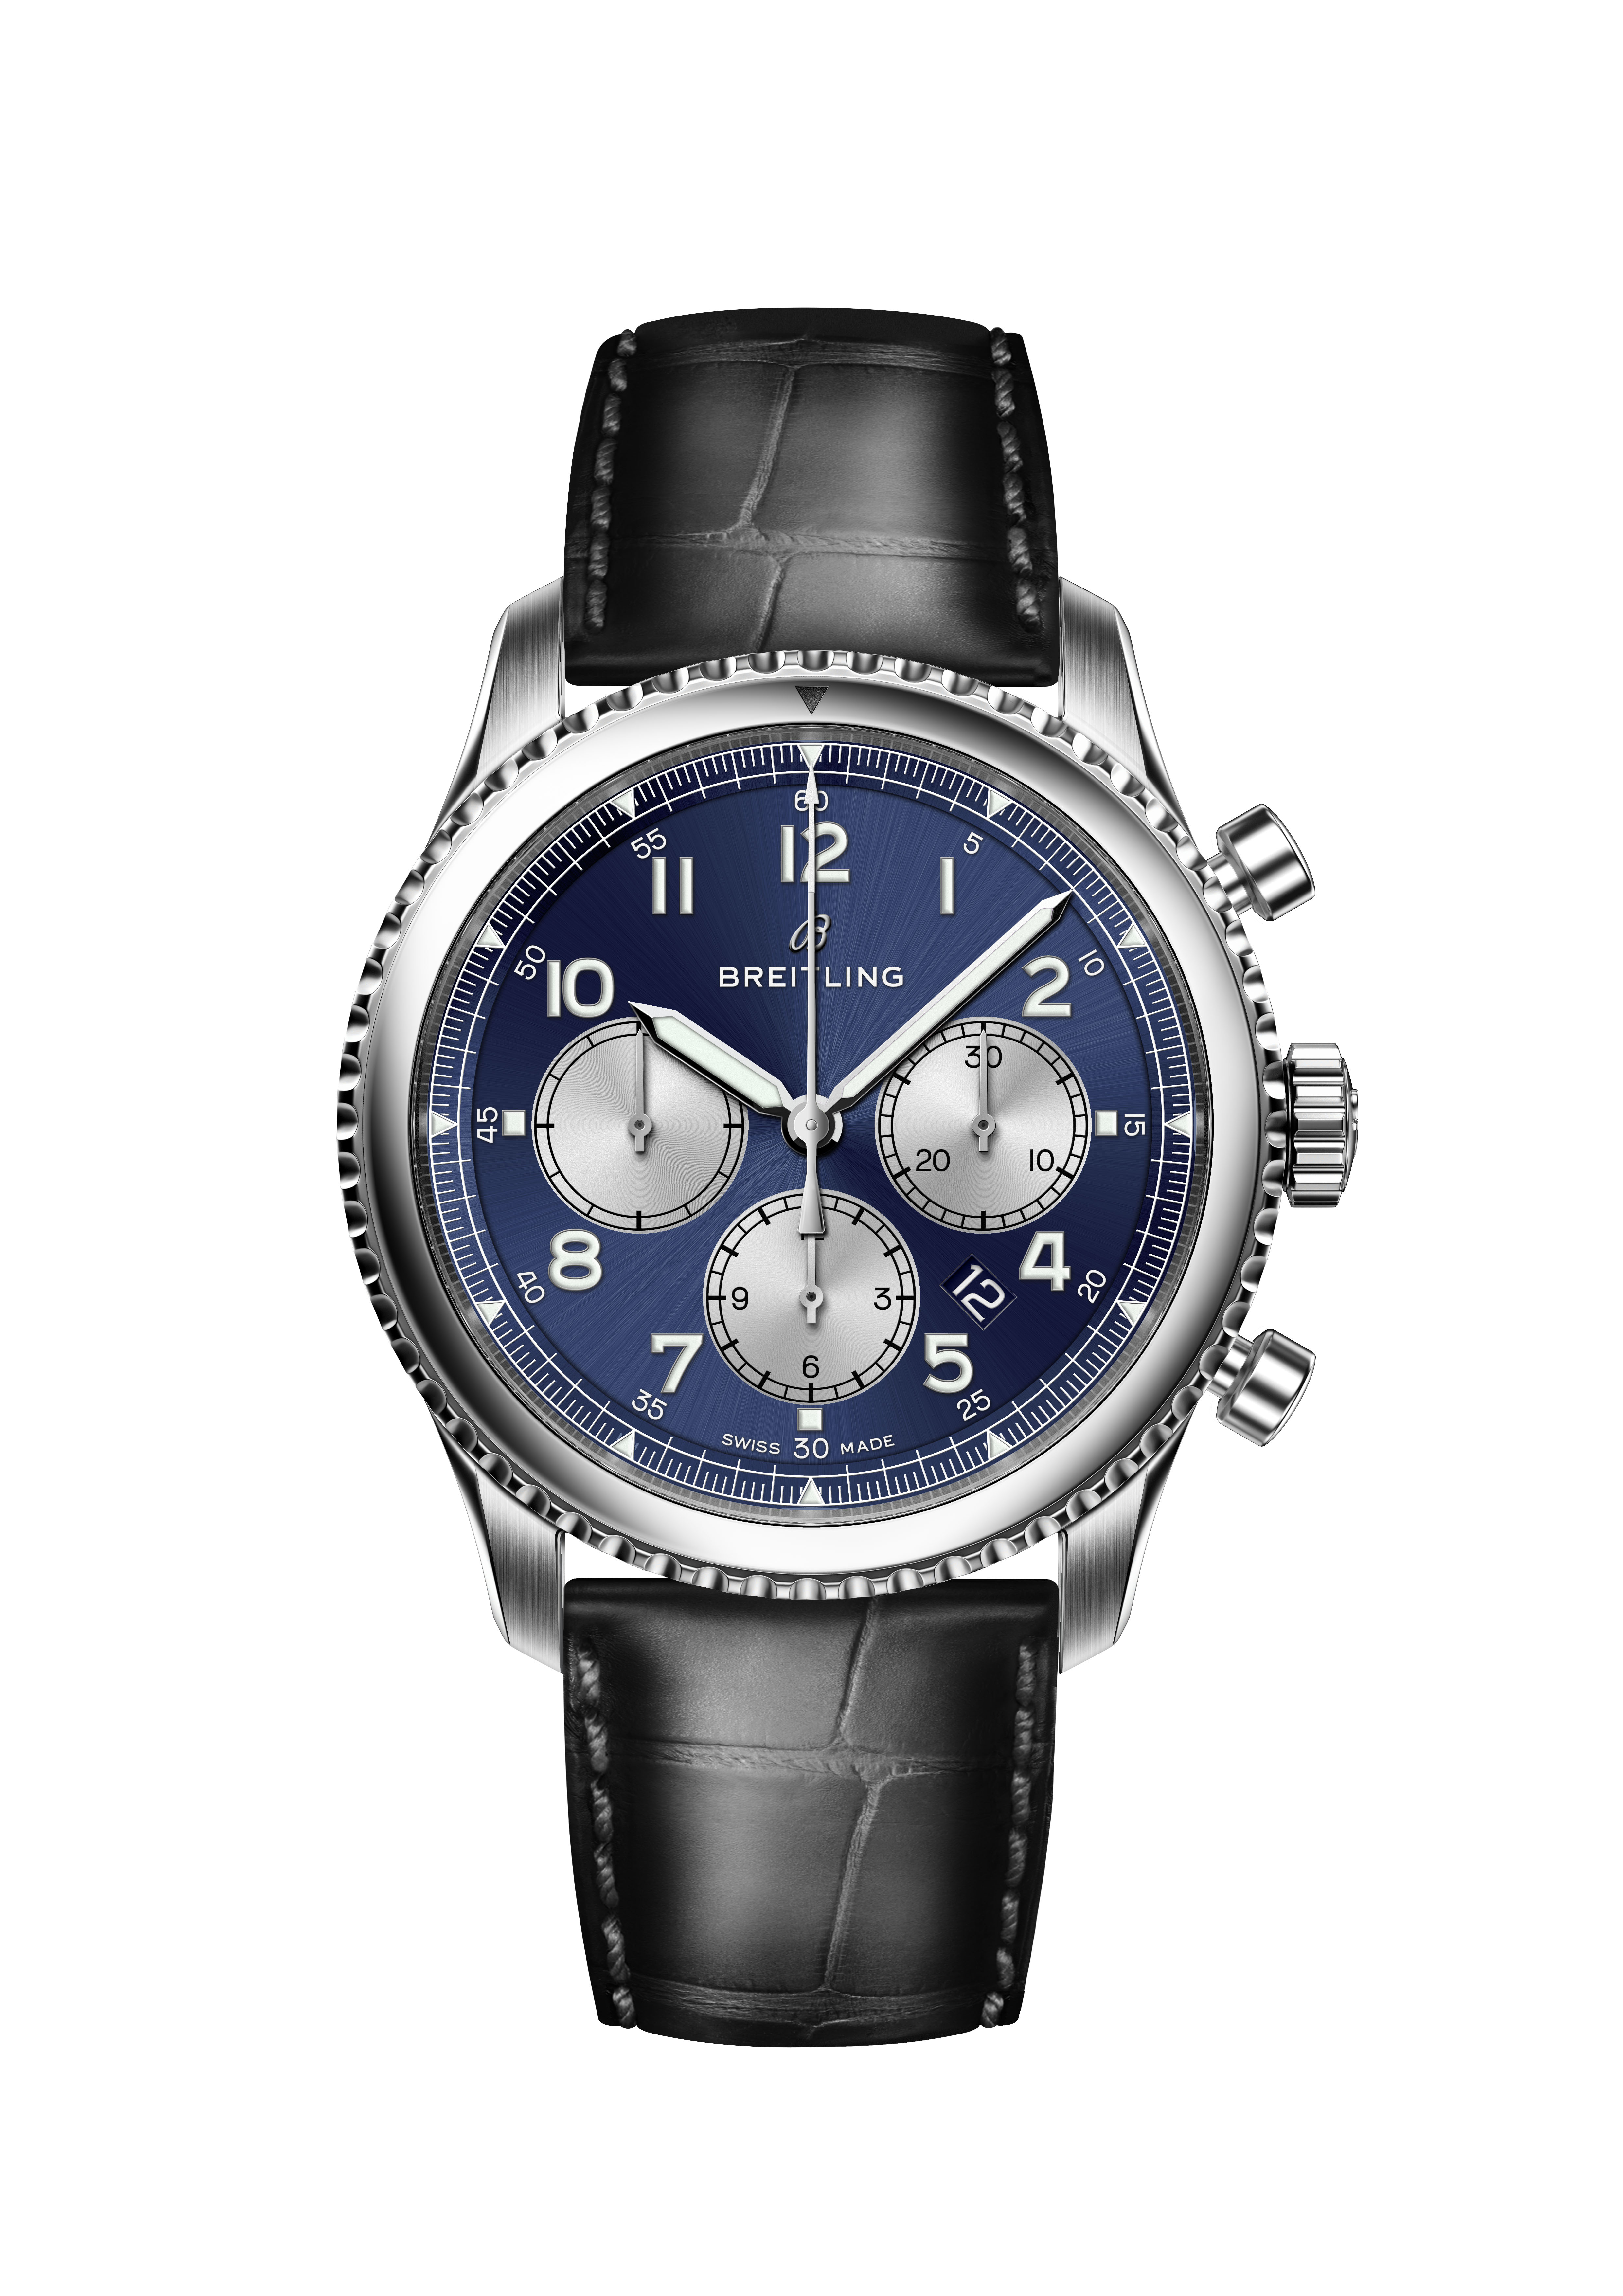 Navitimer 8 B01 with blue dial and black alligator leather strap. (PPR/Breitling)